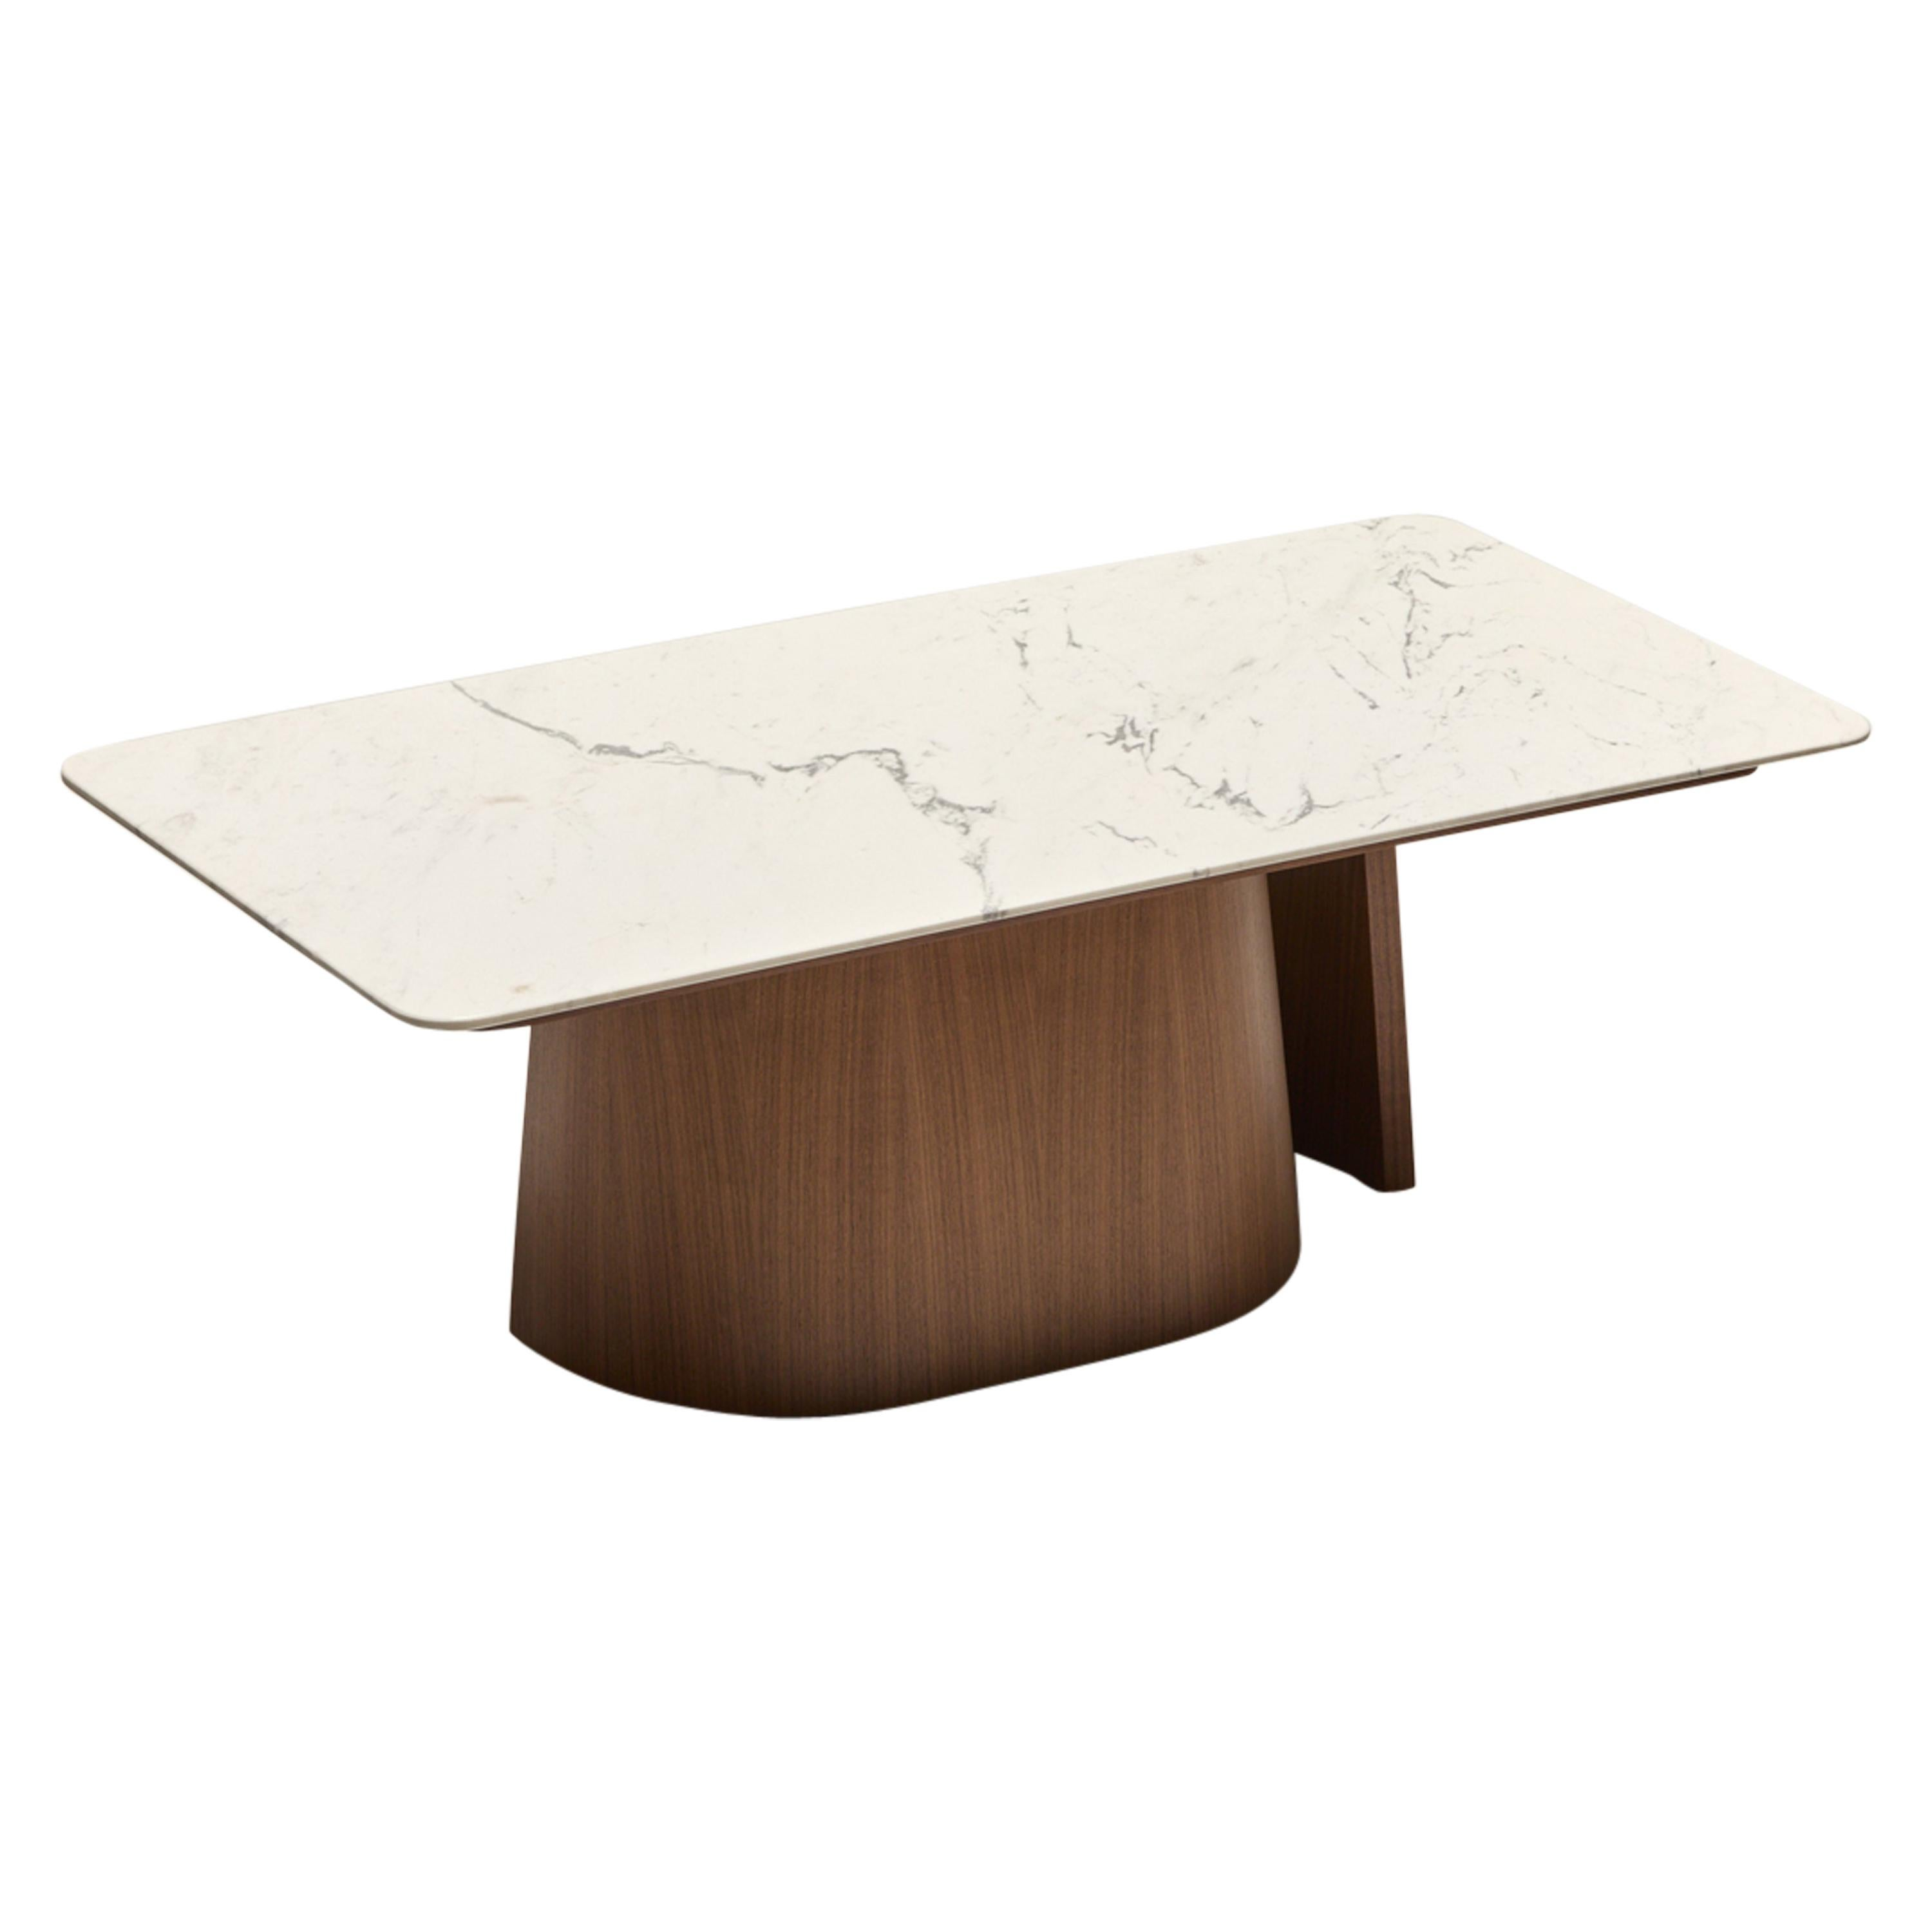 Ooma Side Table by Reda Amalou Design, 2020, Carrare Marble